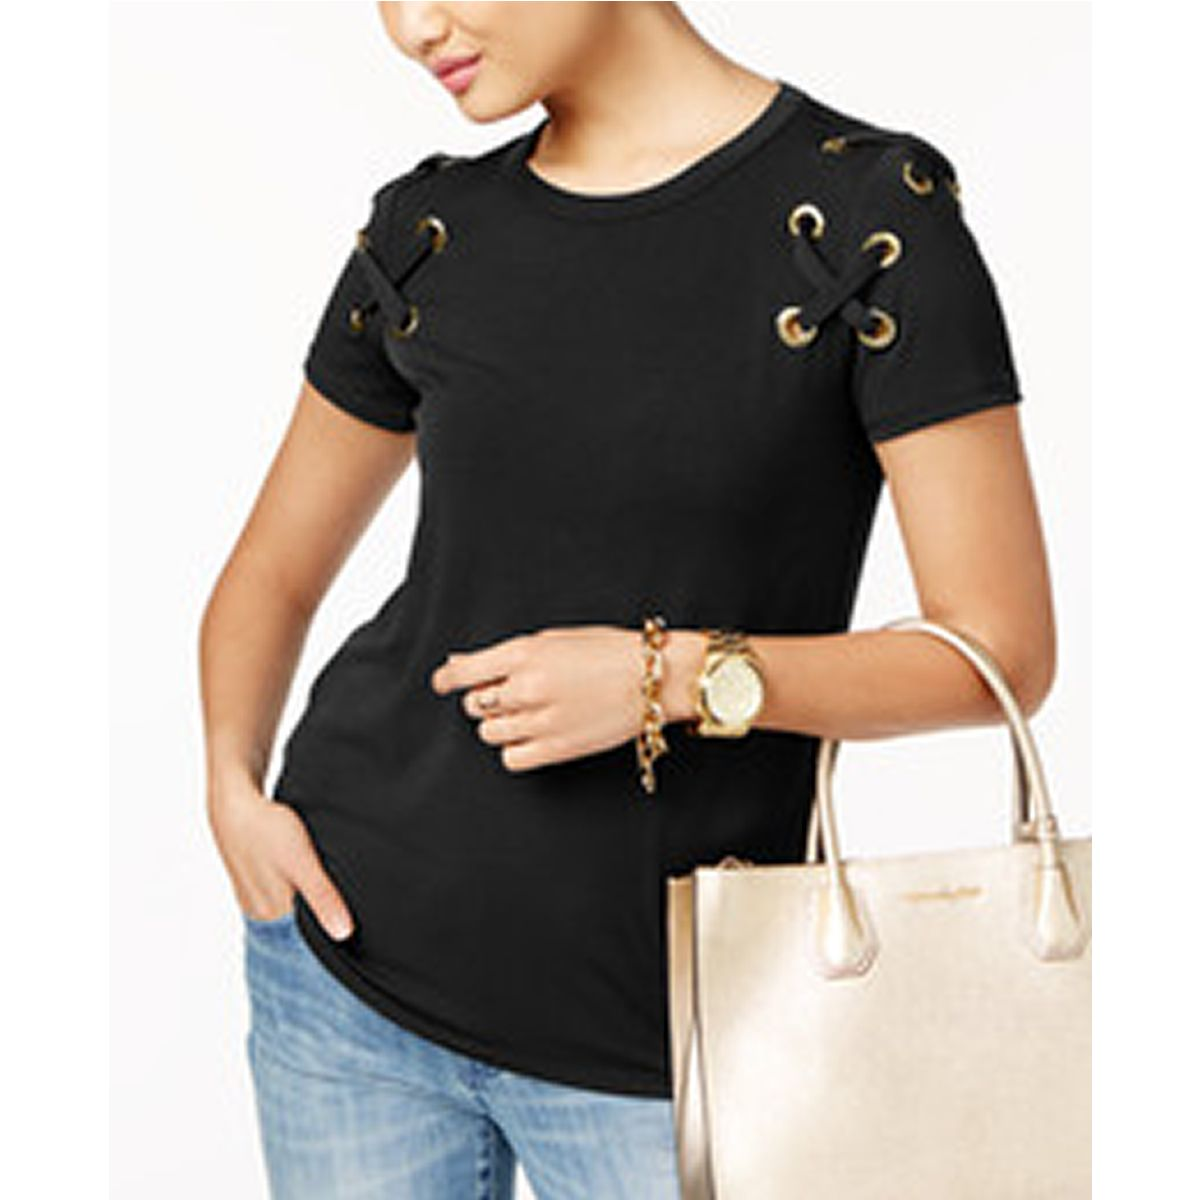 e2720b50be6 Michael Kors Womens Tops - Macy's